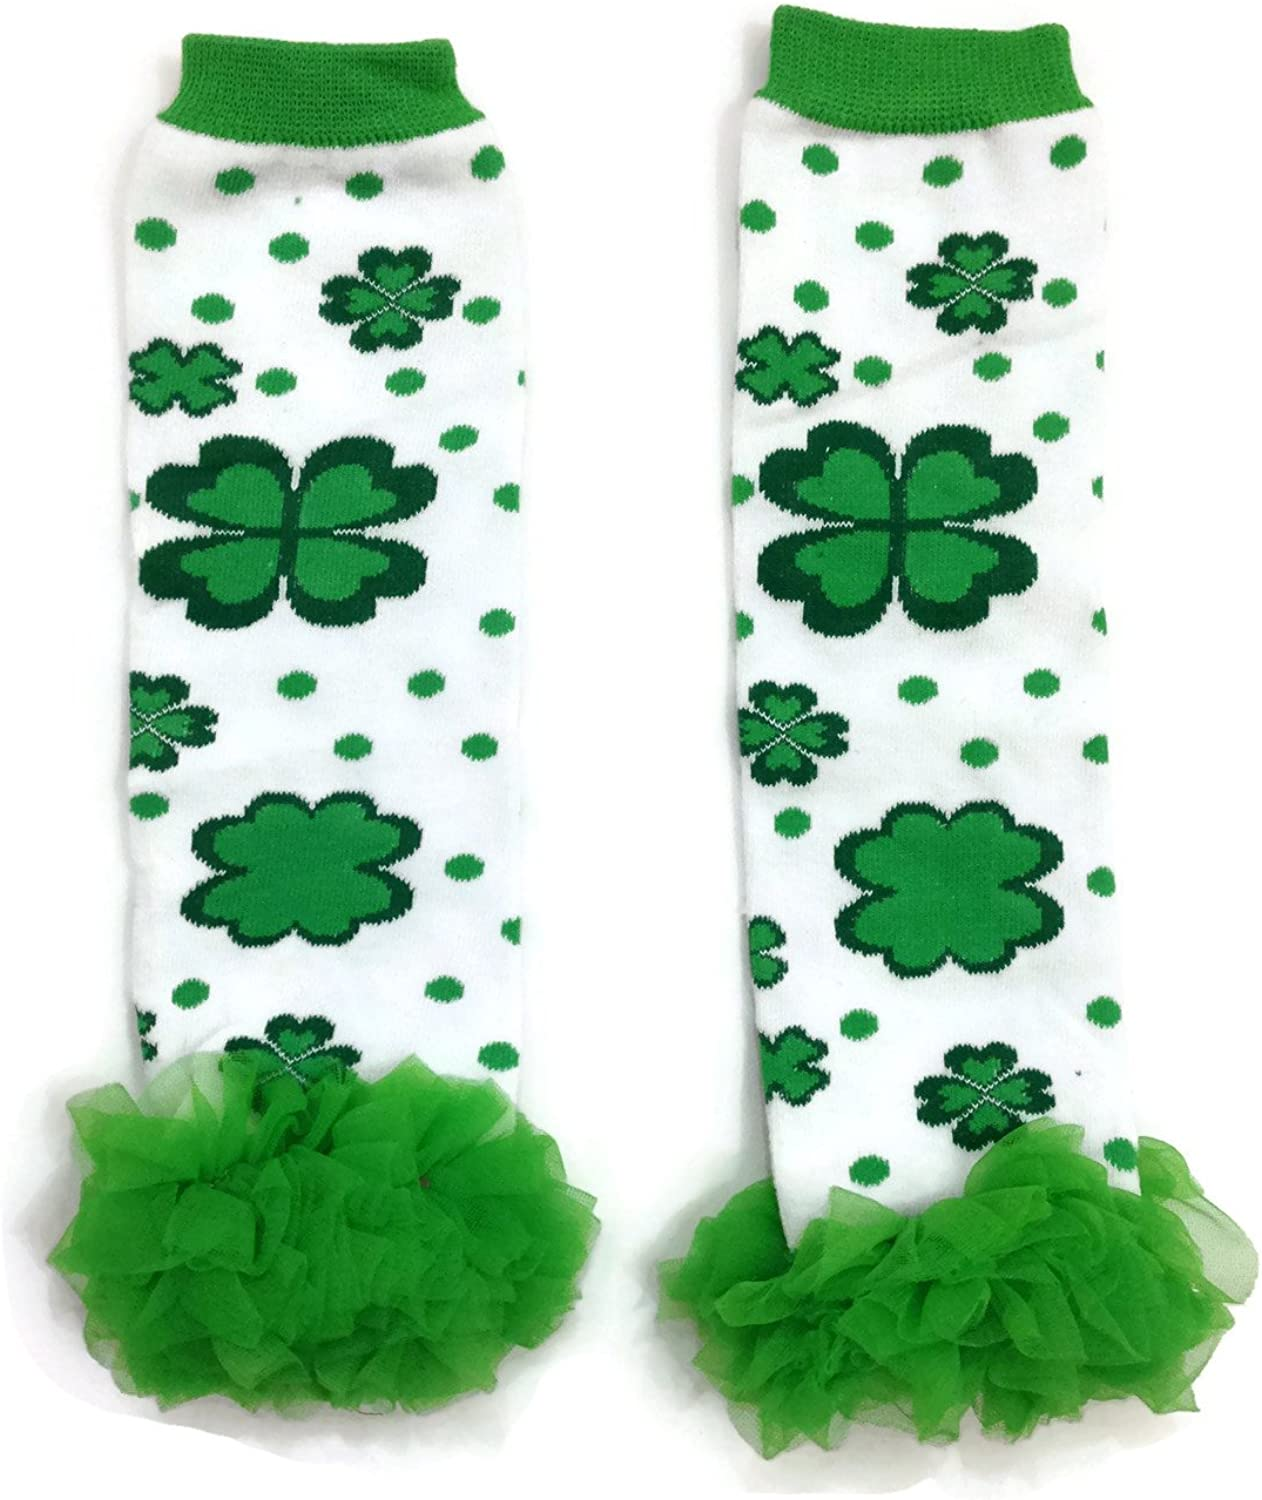 Rush Dance Clover Shamrock Ruffles St Patricks Day Baby//Toddler Leg Warmer